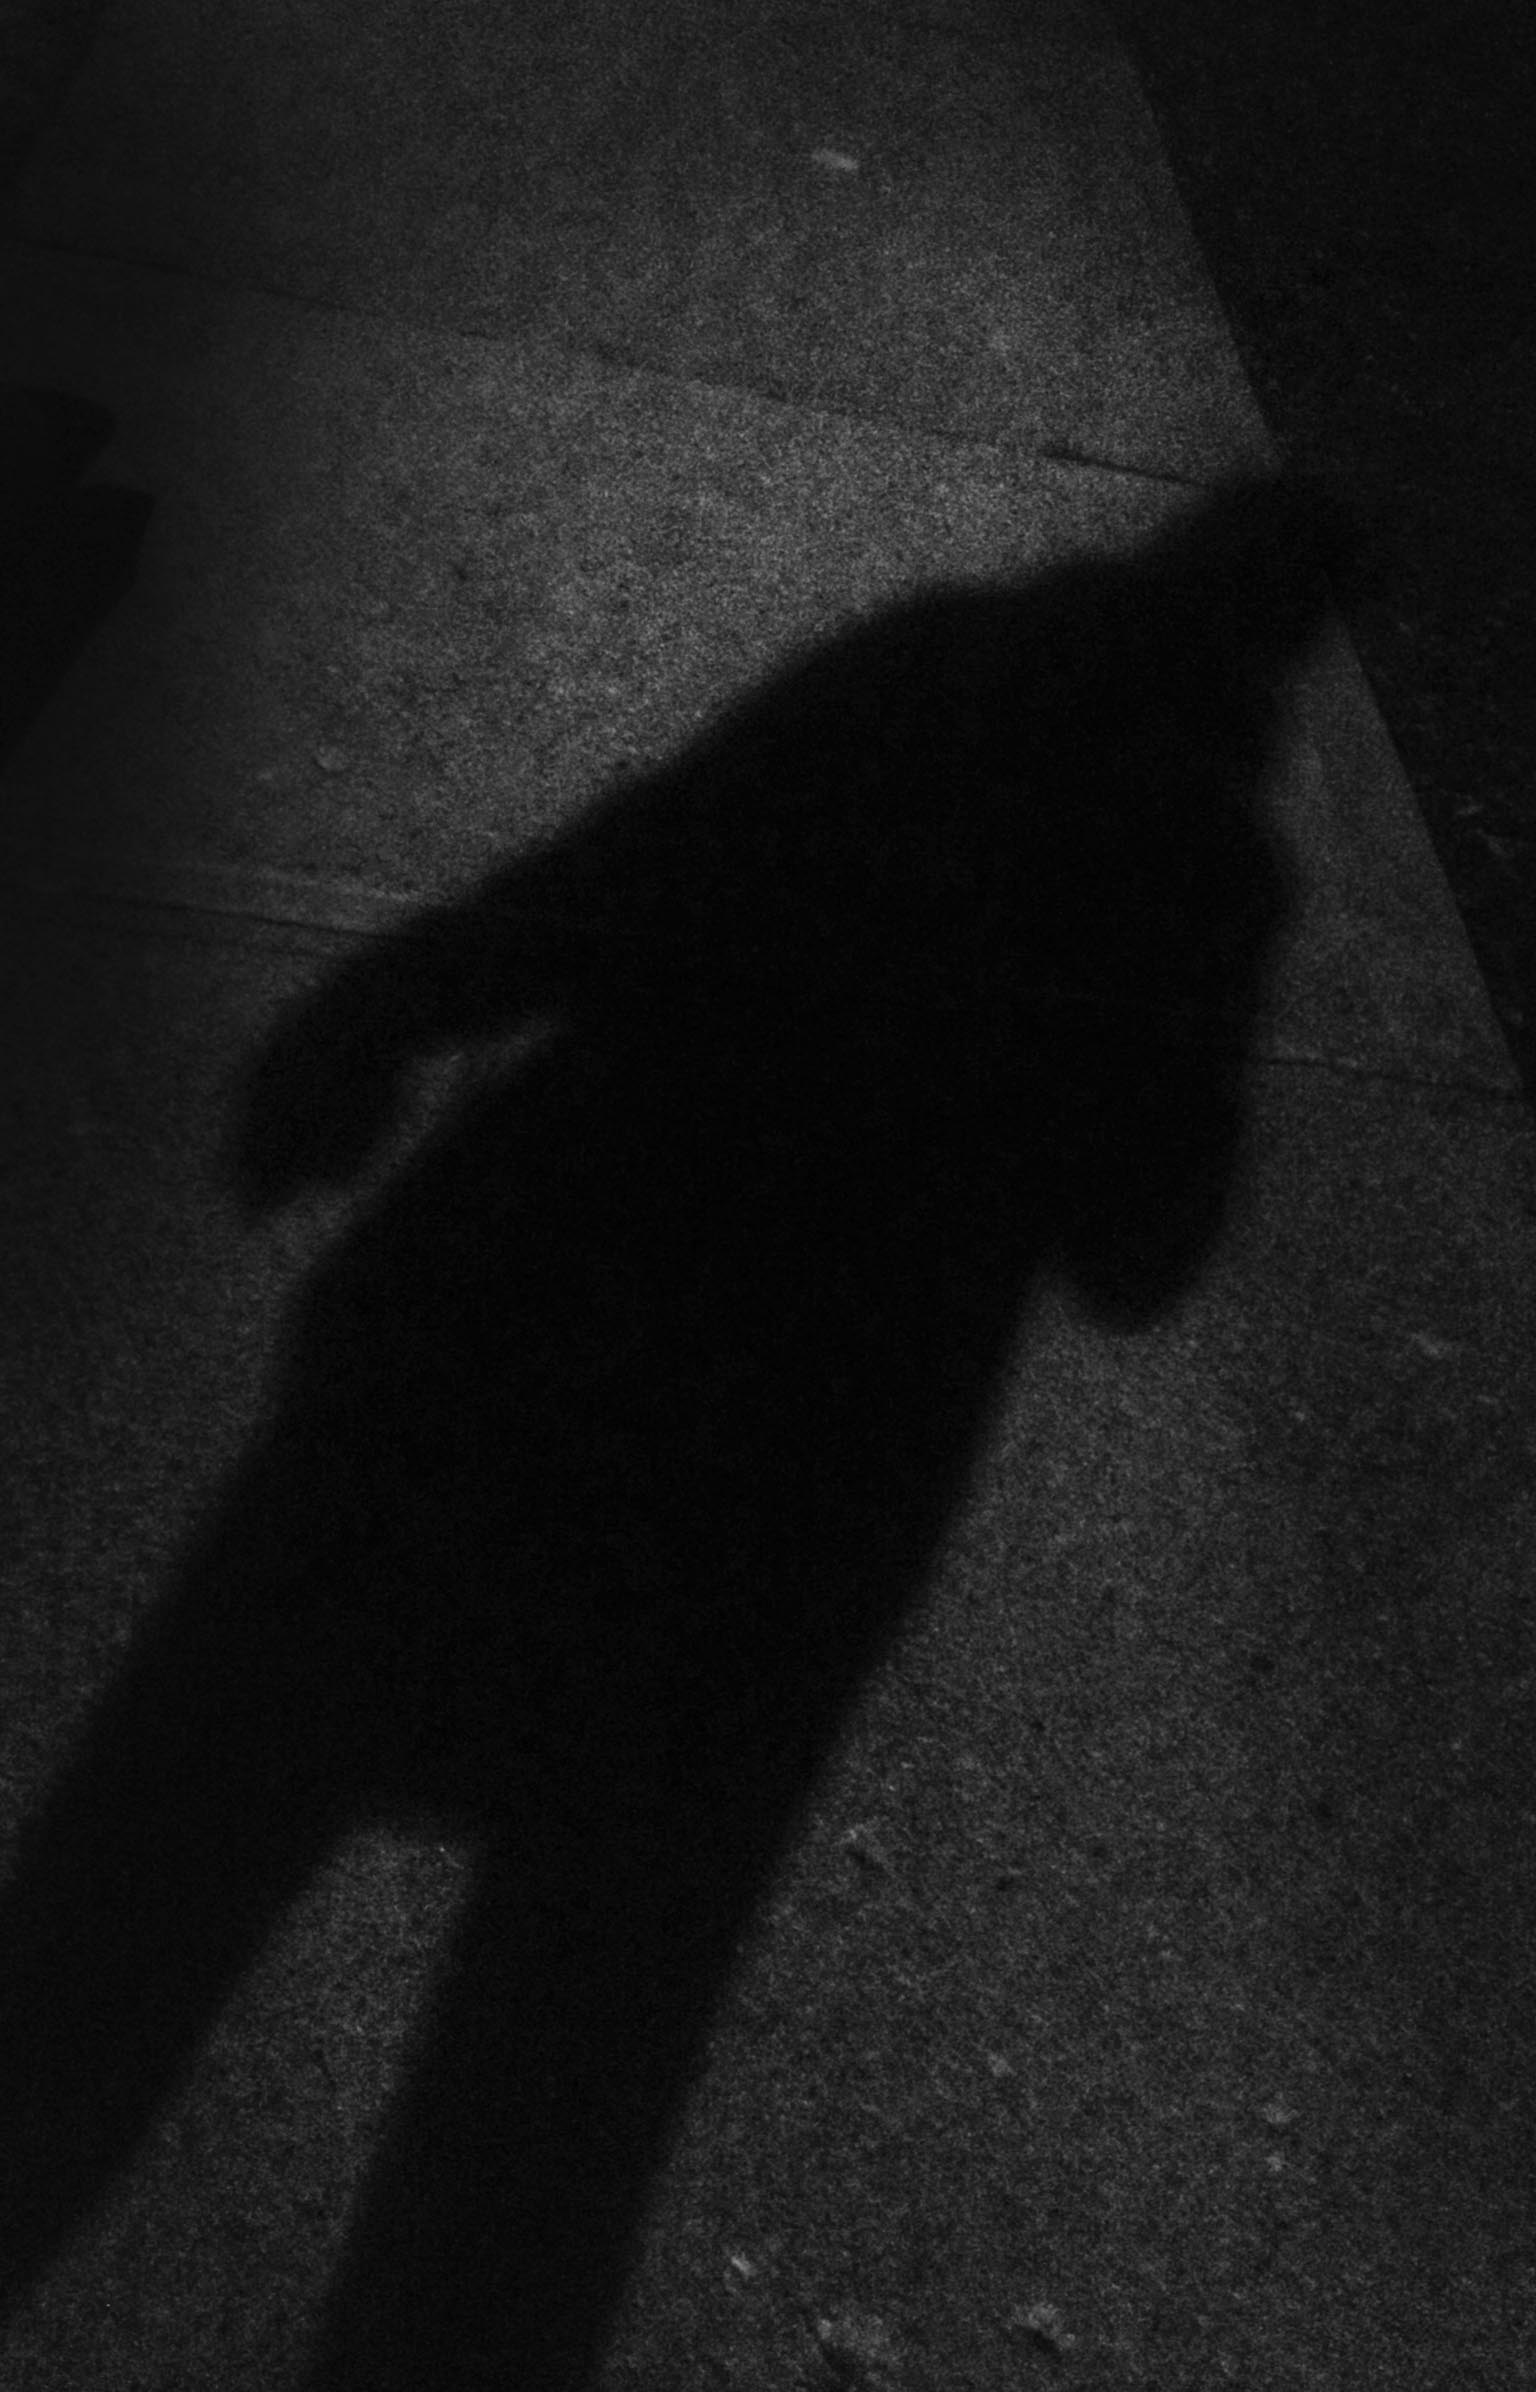 shadow of darkness essay Theme of darkness in macbeth english literature essay it is assumed that darkness shadow creates an identical impression in her mind which later leads her to.